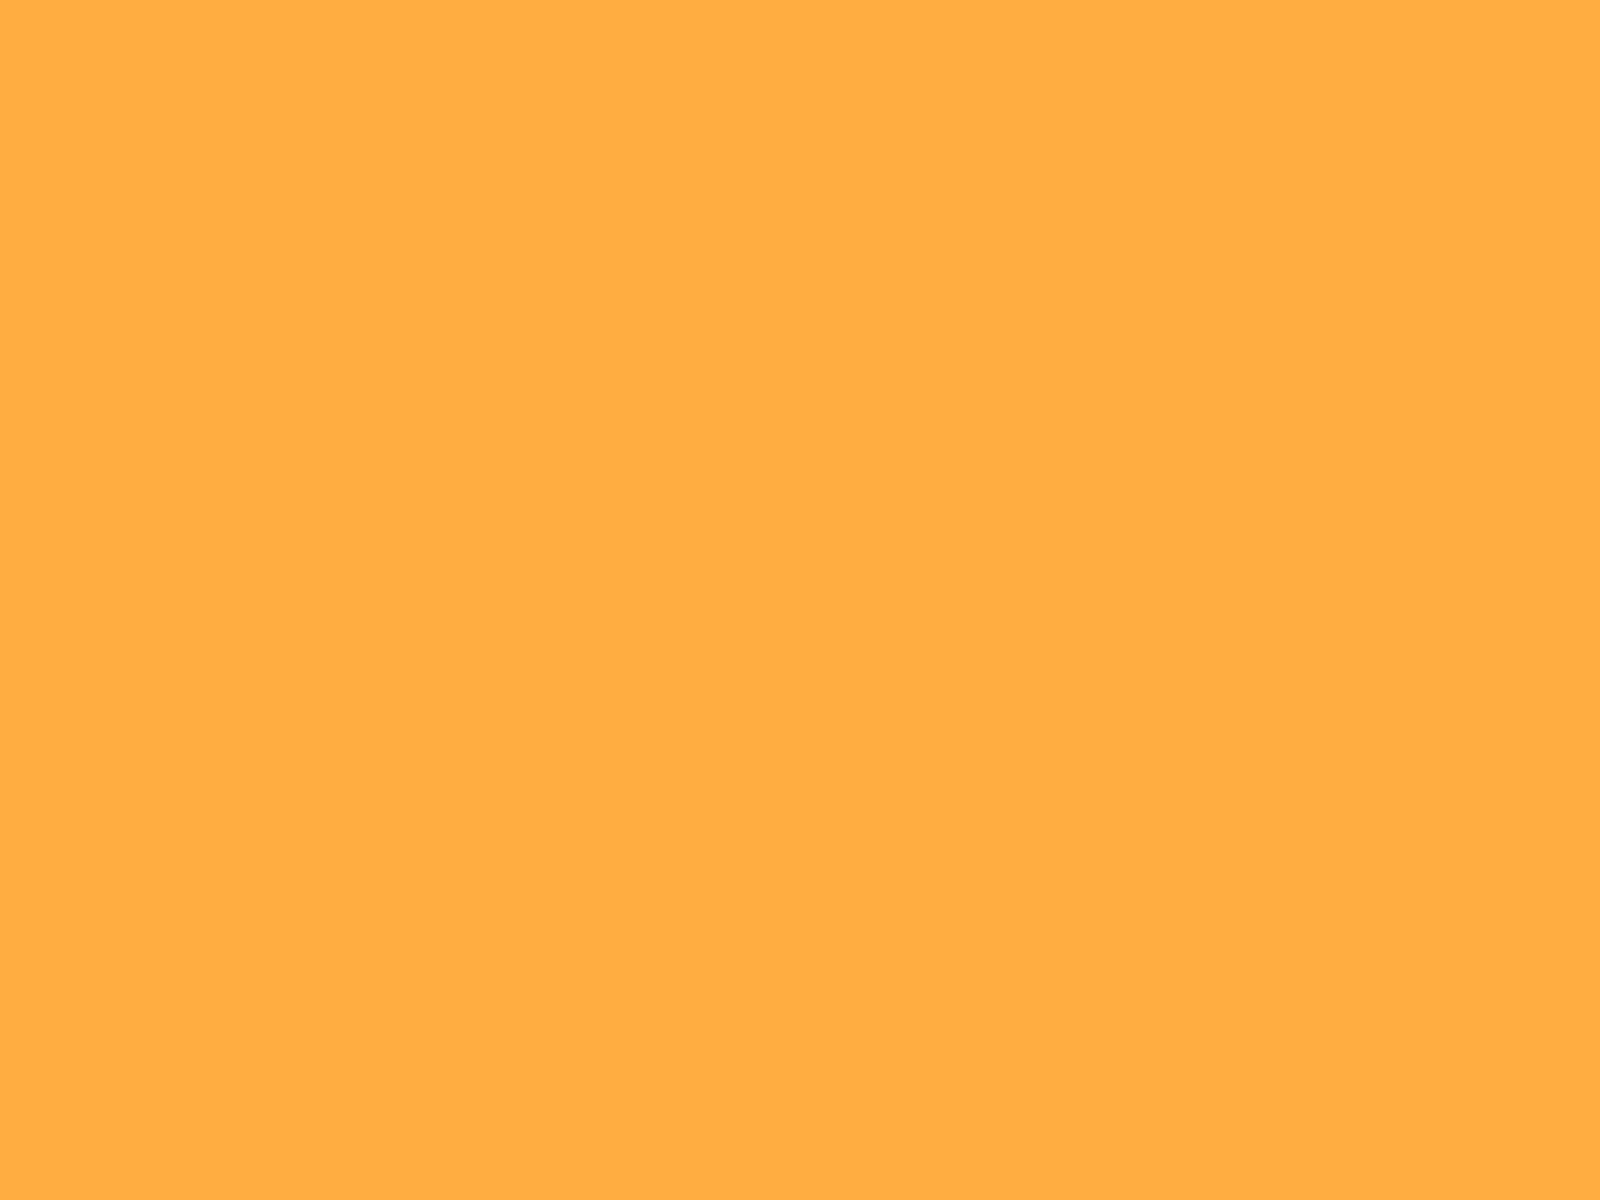 1600x1200 Yellow Orange Solid Color Background